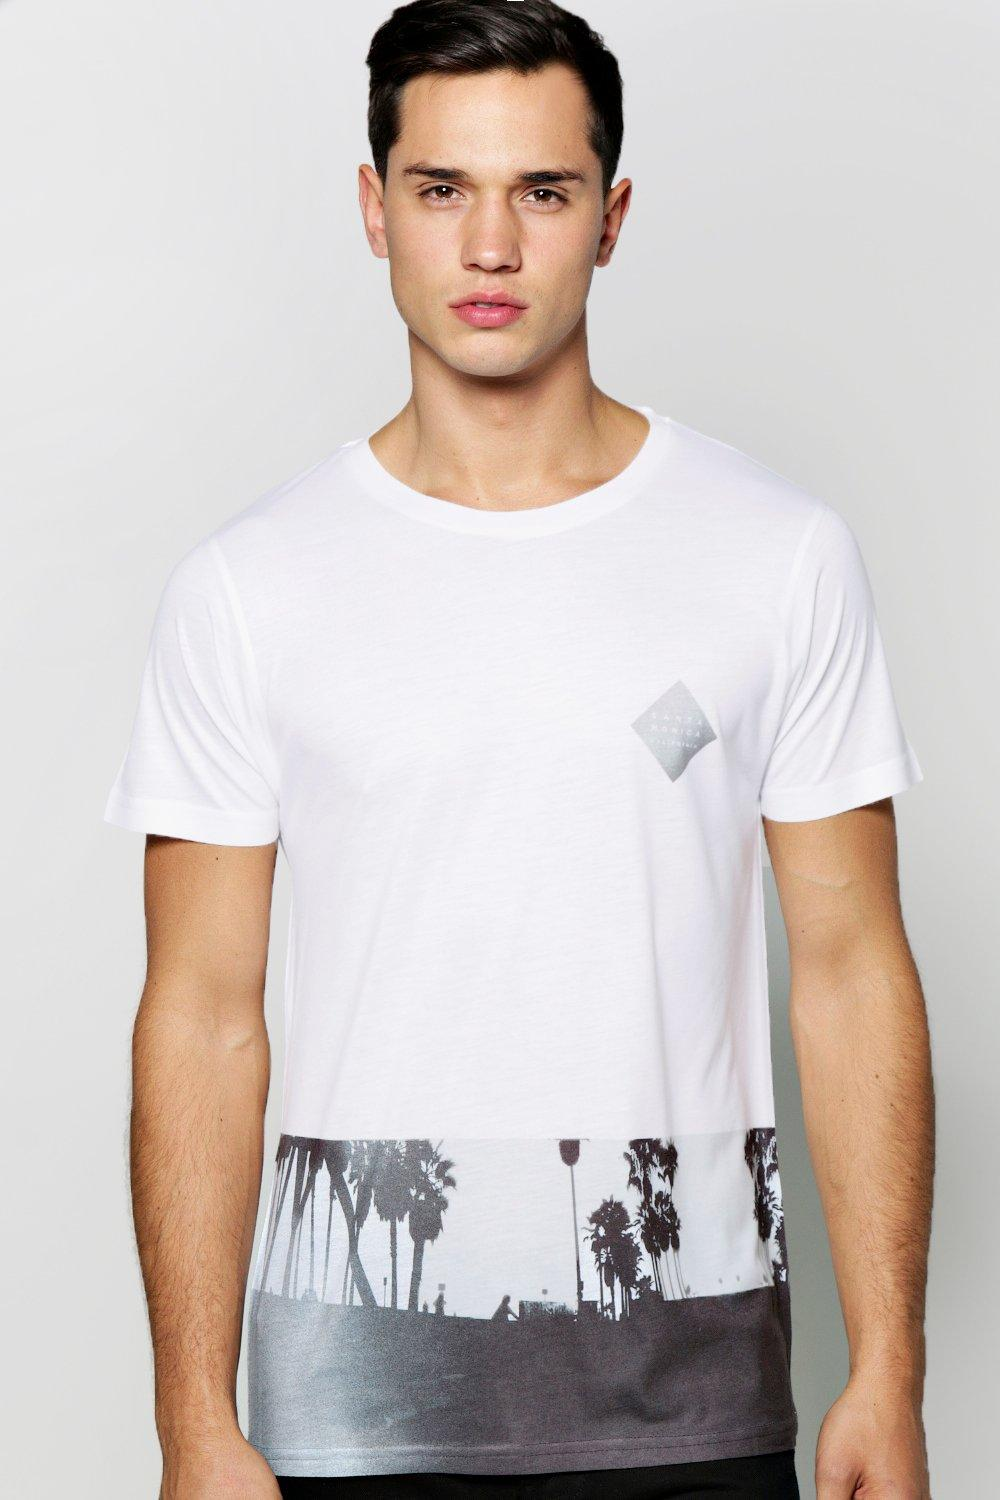 Venice Beach Sublimation T Shirt